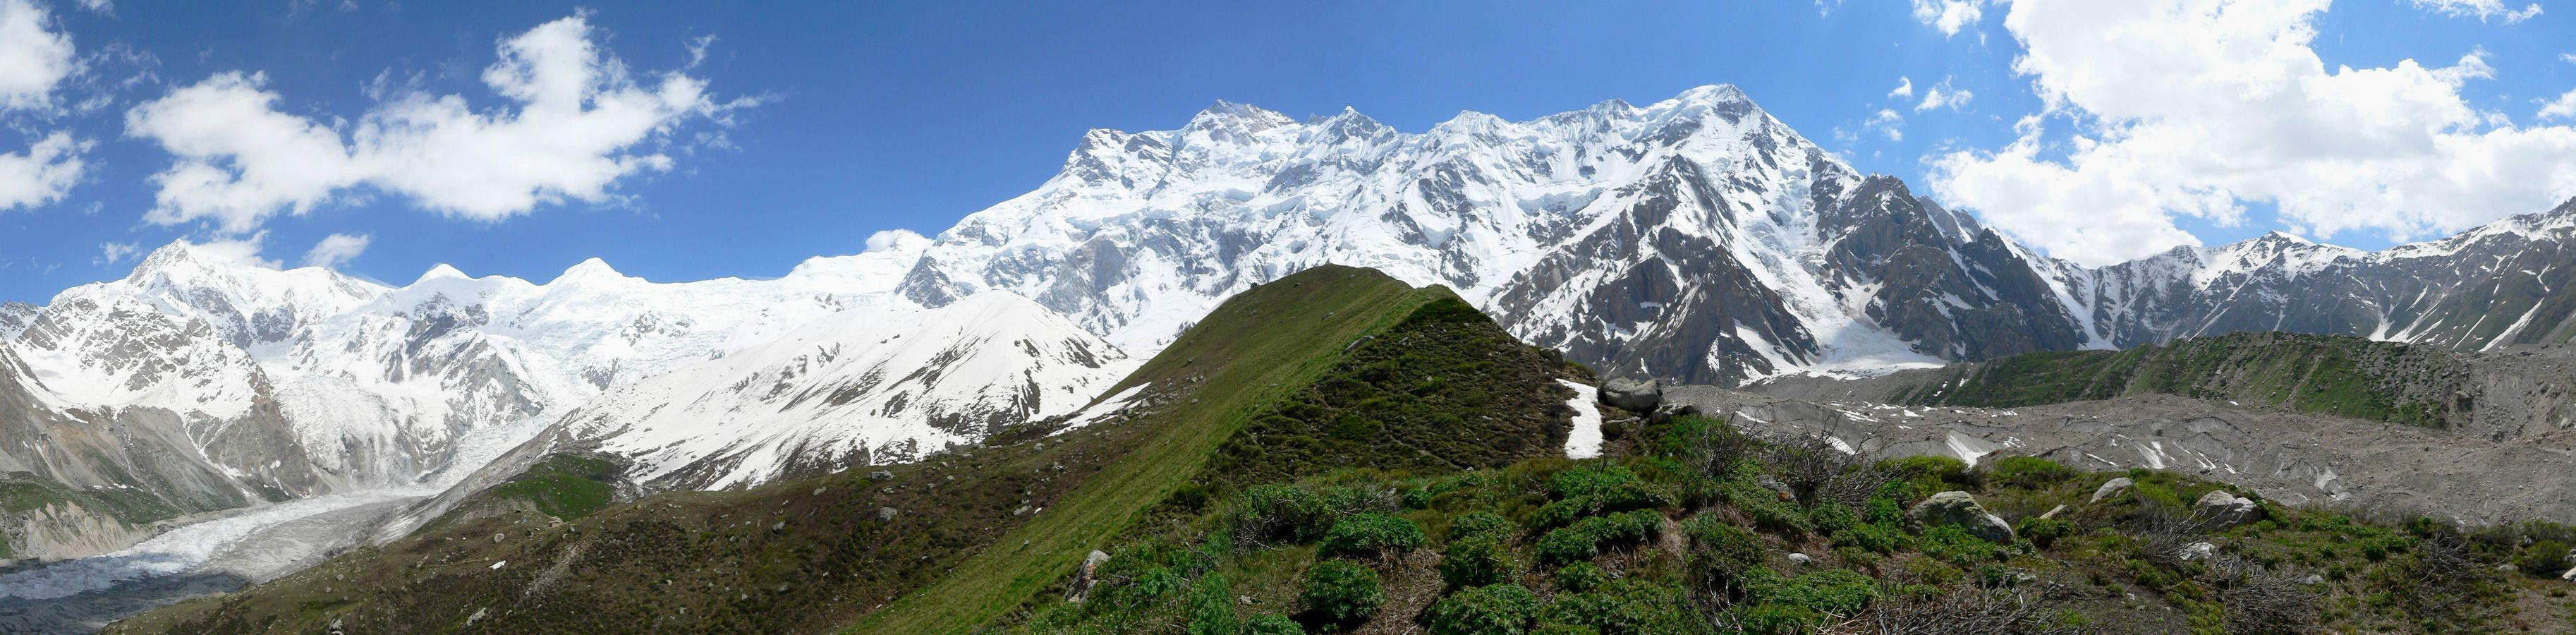 http://upload.wikimedia.org/wikipedia/commons/6/63/ApproachingNangaParbat.JPG